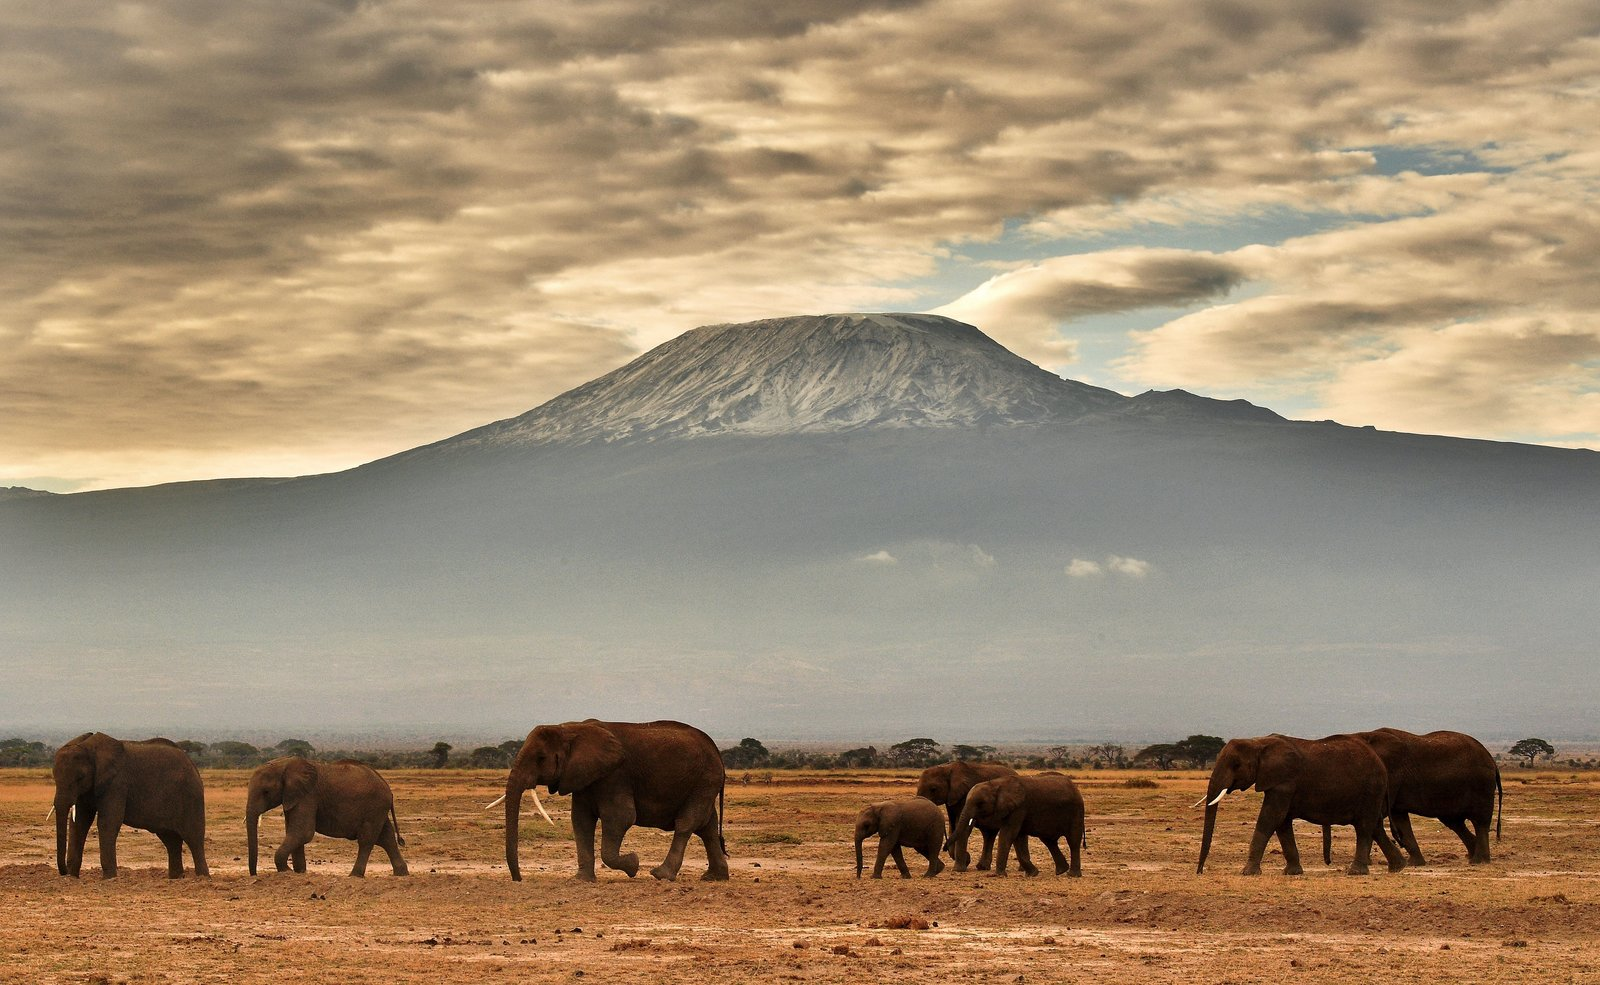 Elephants are among the species hit particularly hard by climate change's impacts